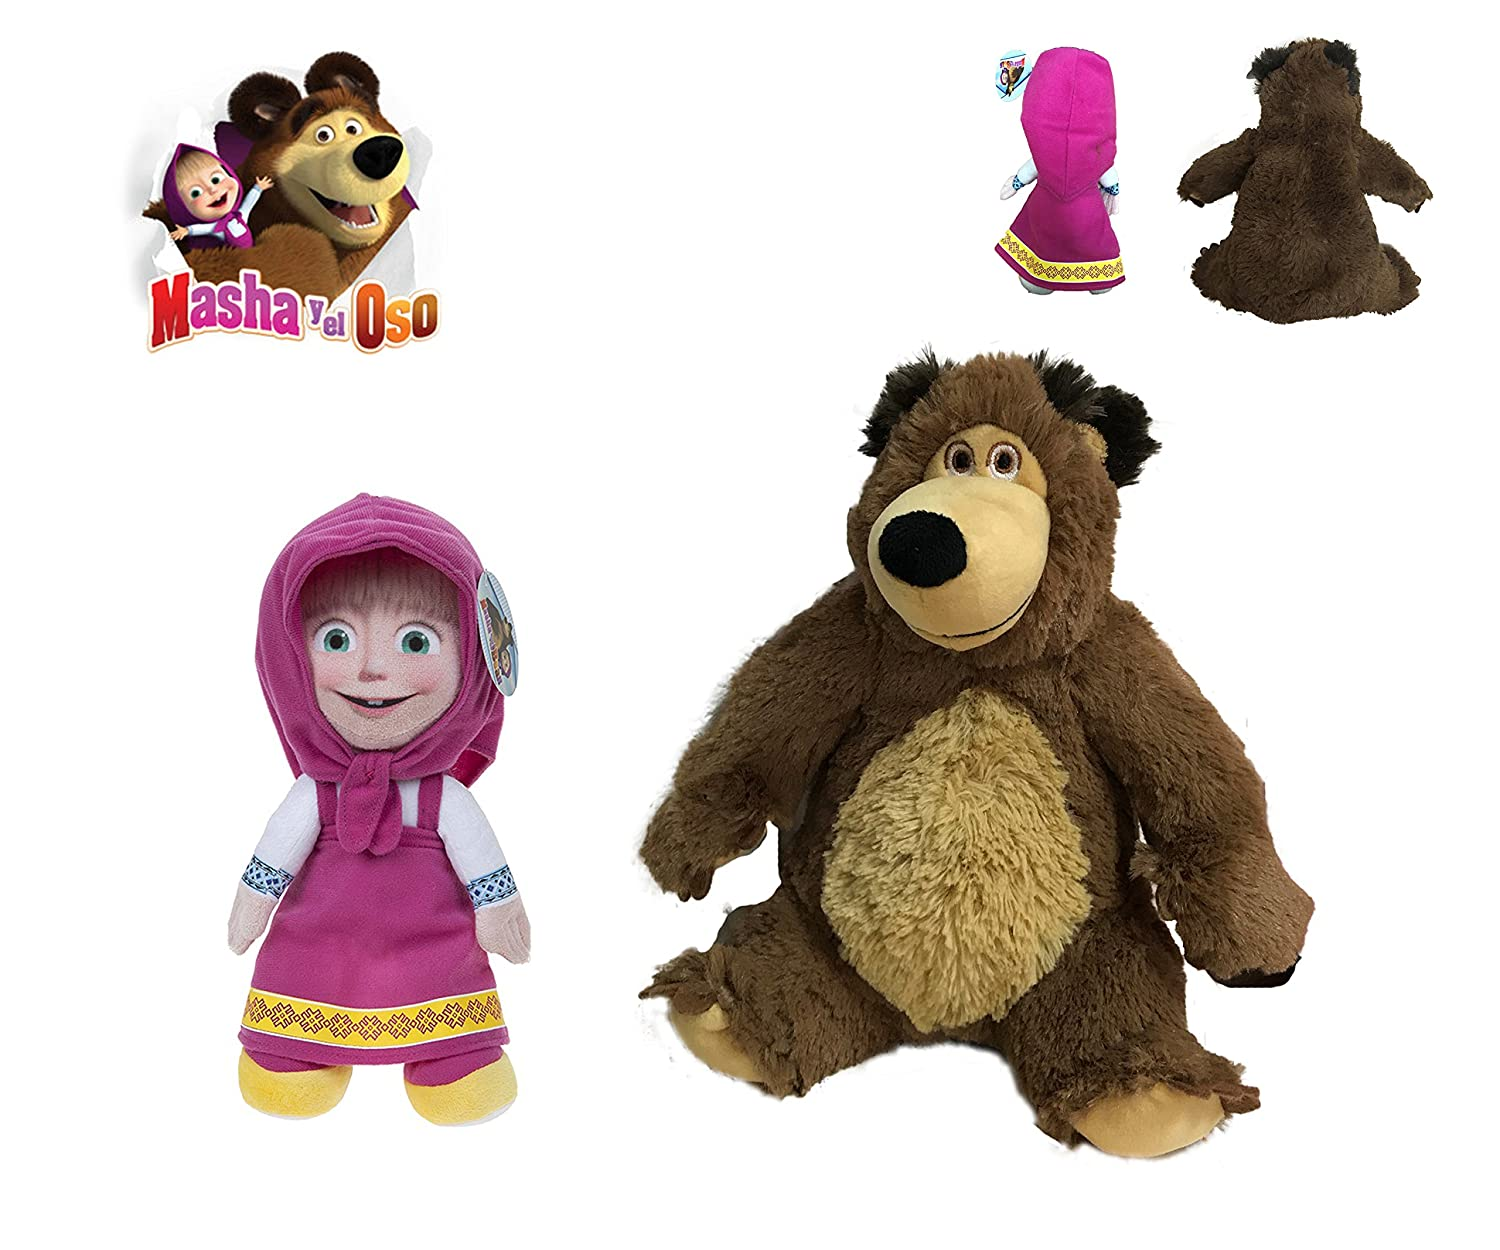 MASHA Y EL OSO - Pack 2 peluches personajes de la película Masha y el oso - El pack incluye Masha (sentada 21cm/de pie 27cm) y el Oso (sentado 23cm) - Calidad Super Soft masha and the bear